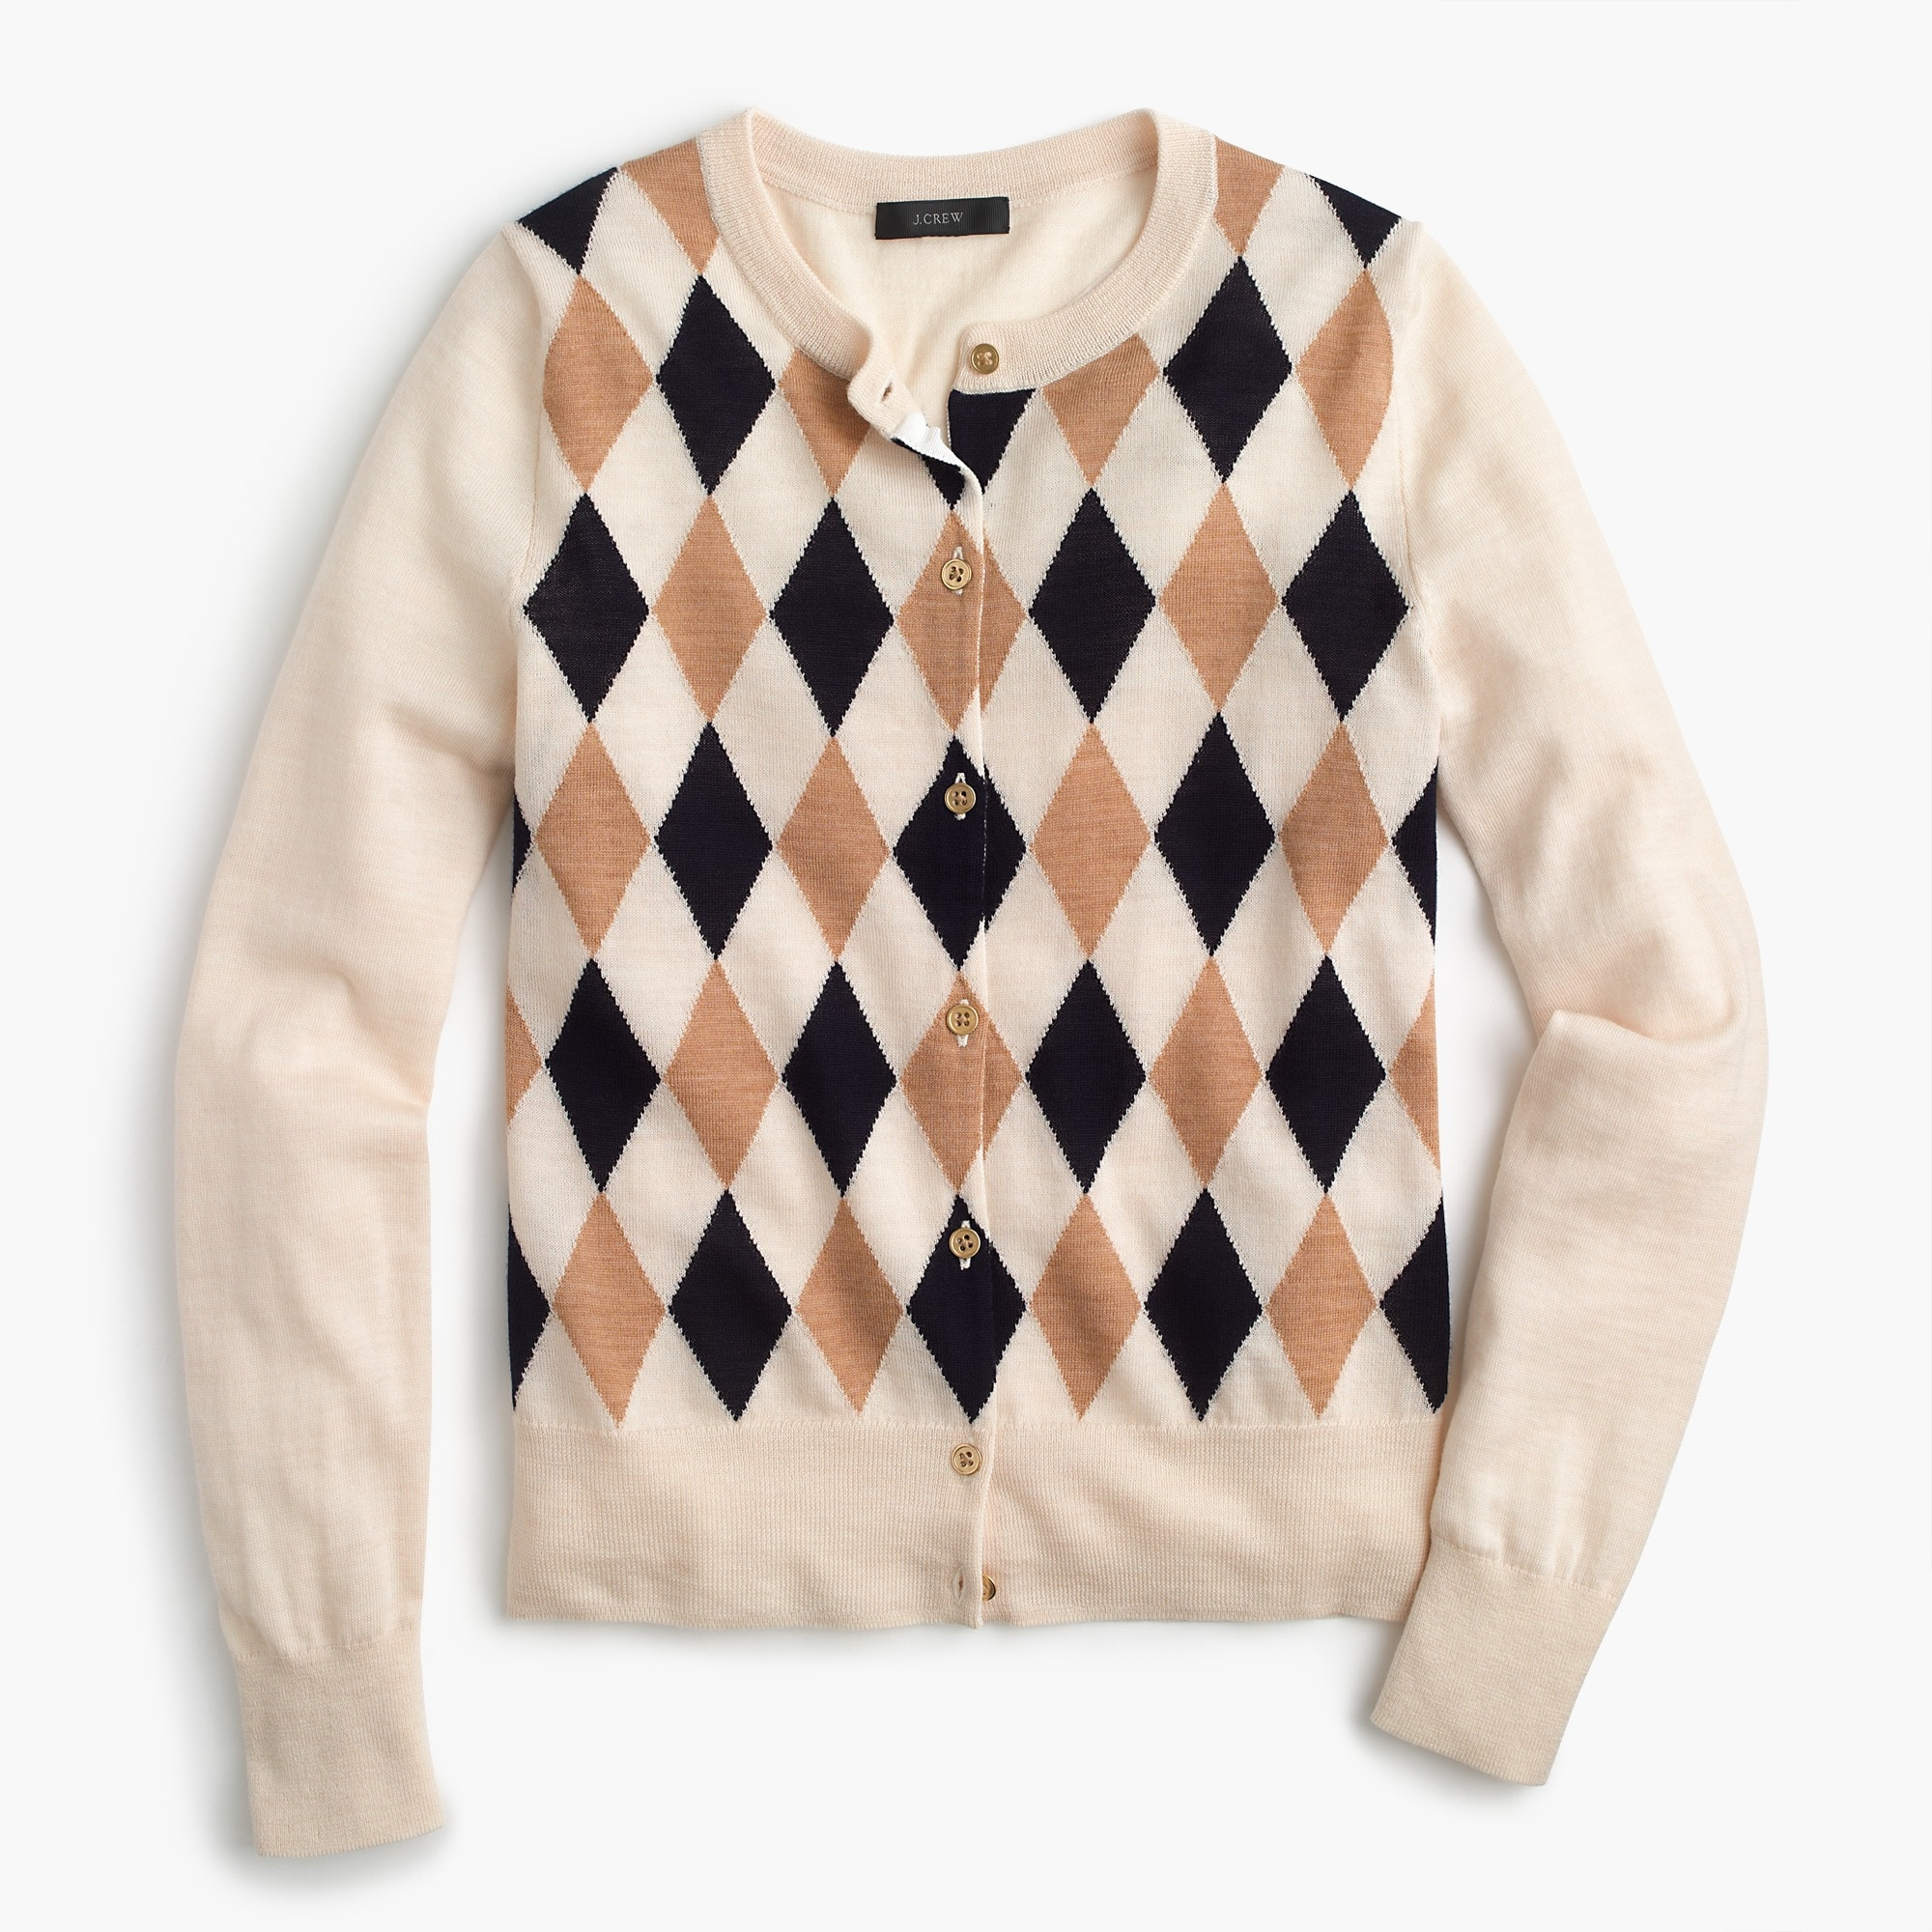 Lightweight wool Jackie cardigan sweater in argyle